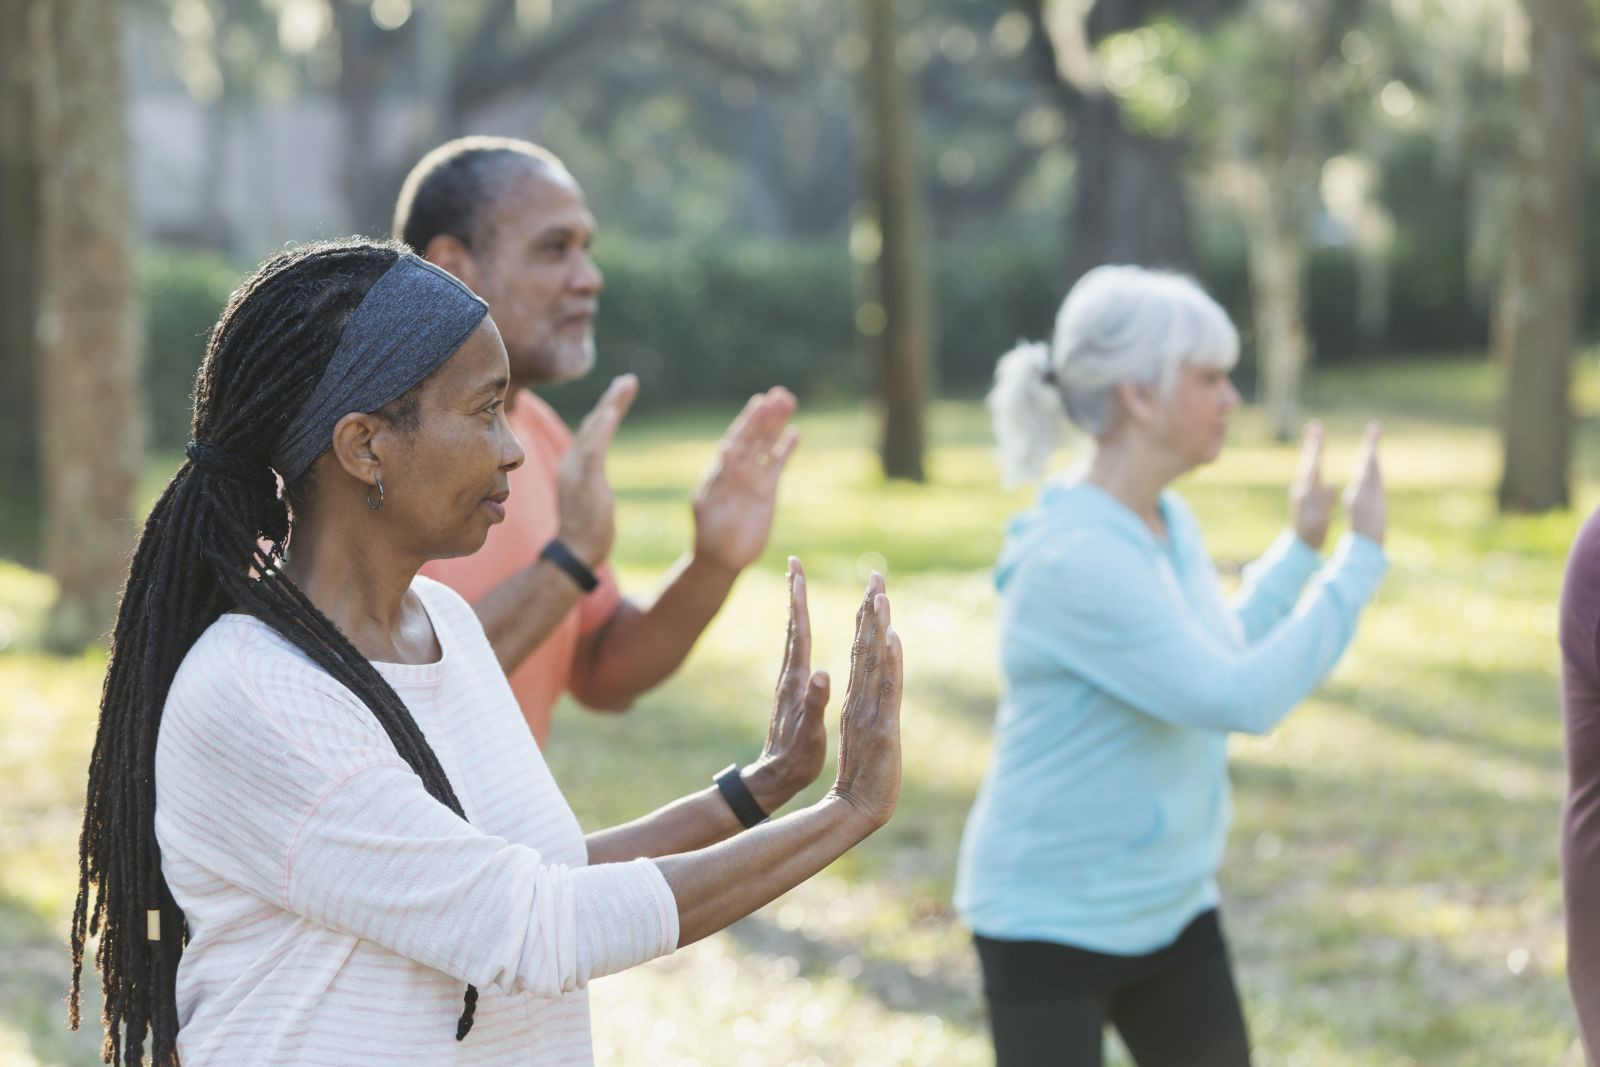 A sharper mind: tai chi can improve cognitive function - Harvard Health